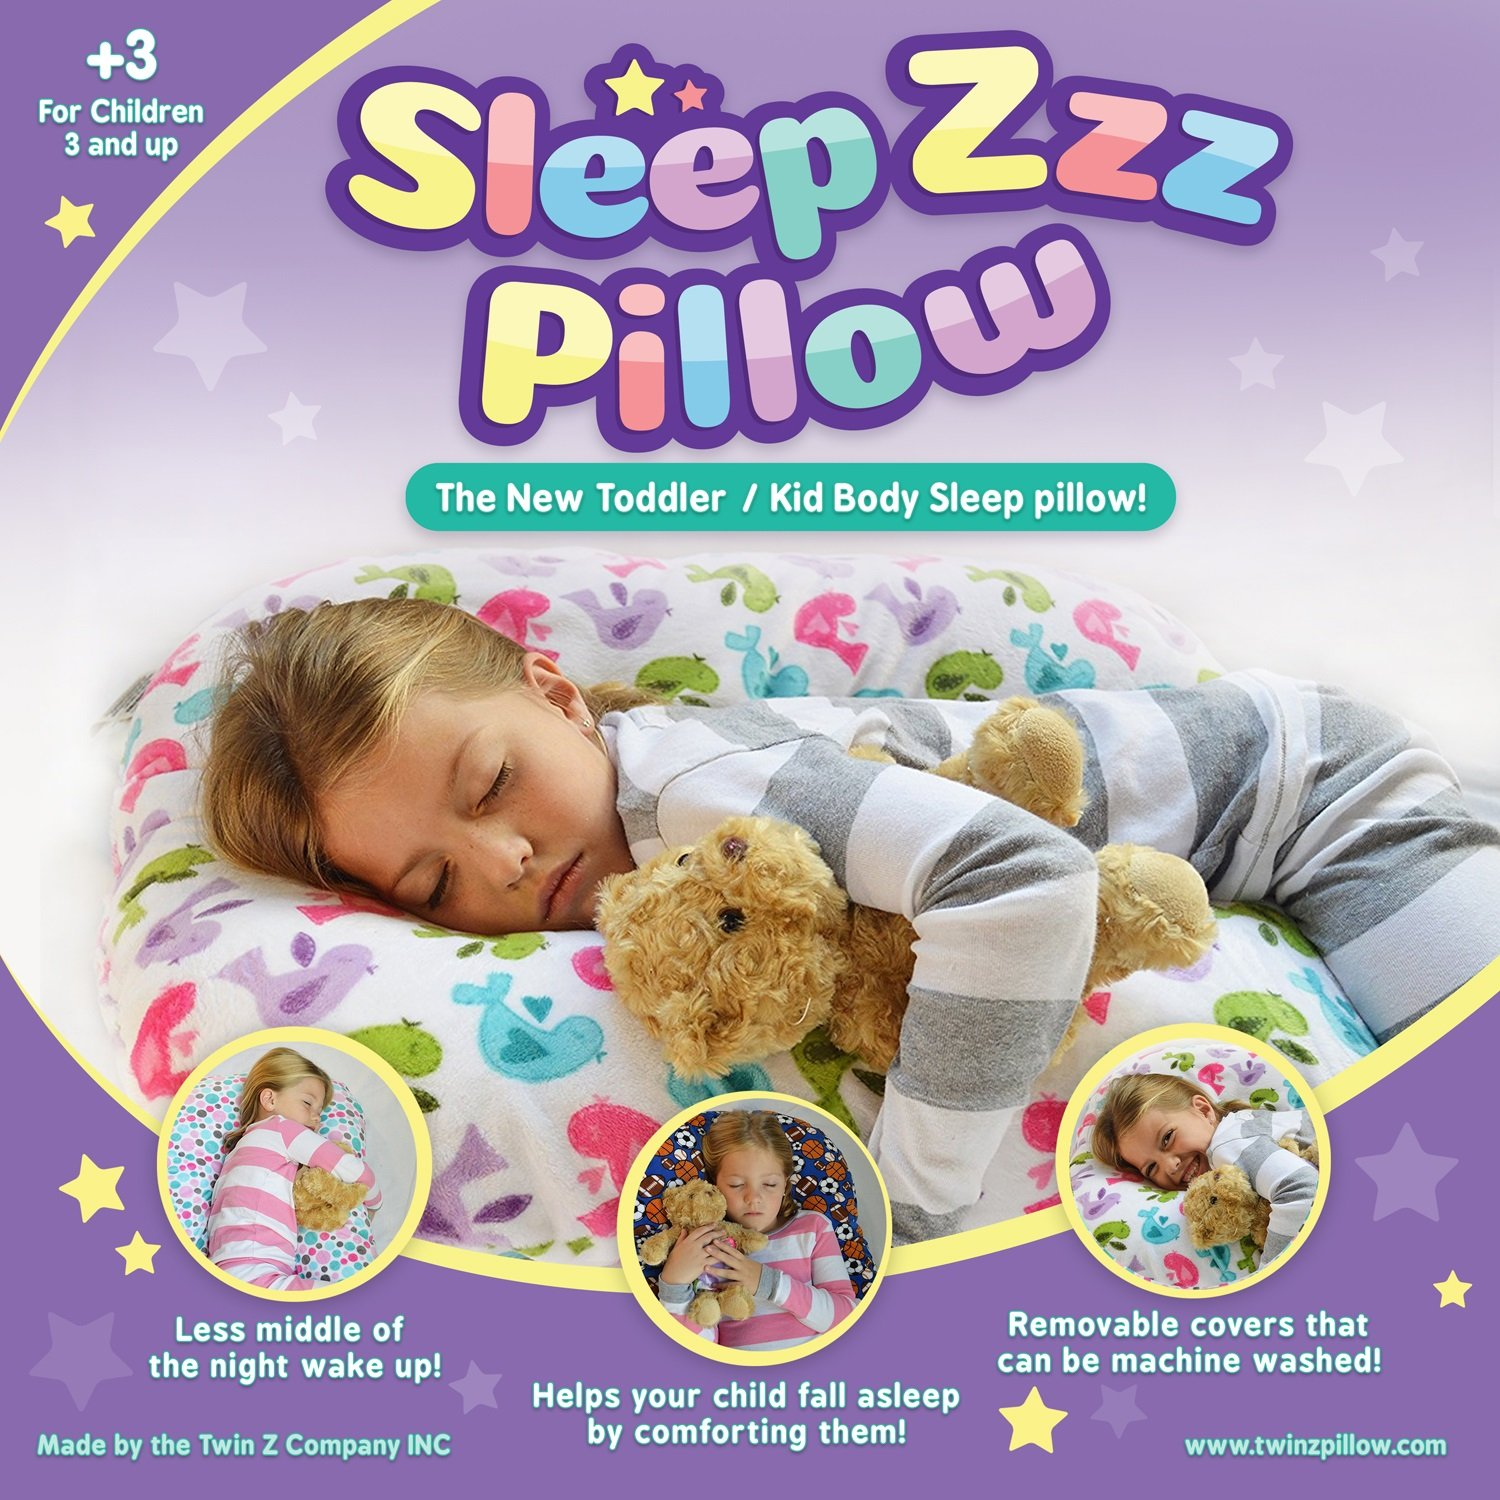 Sleep Zzz Bedtime Pillow w/ removable washable cover by One Z Pillow